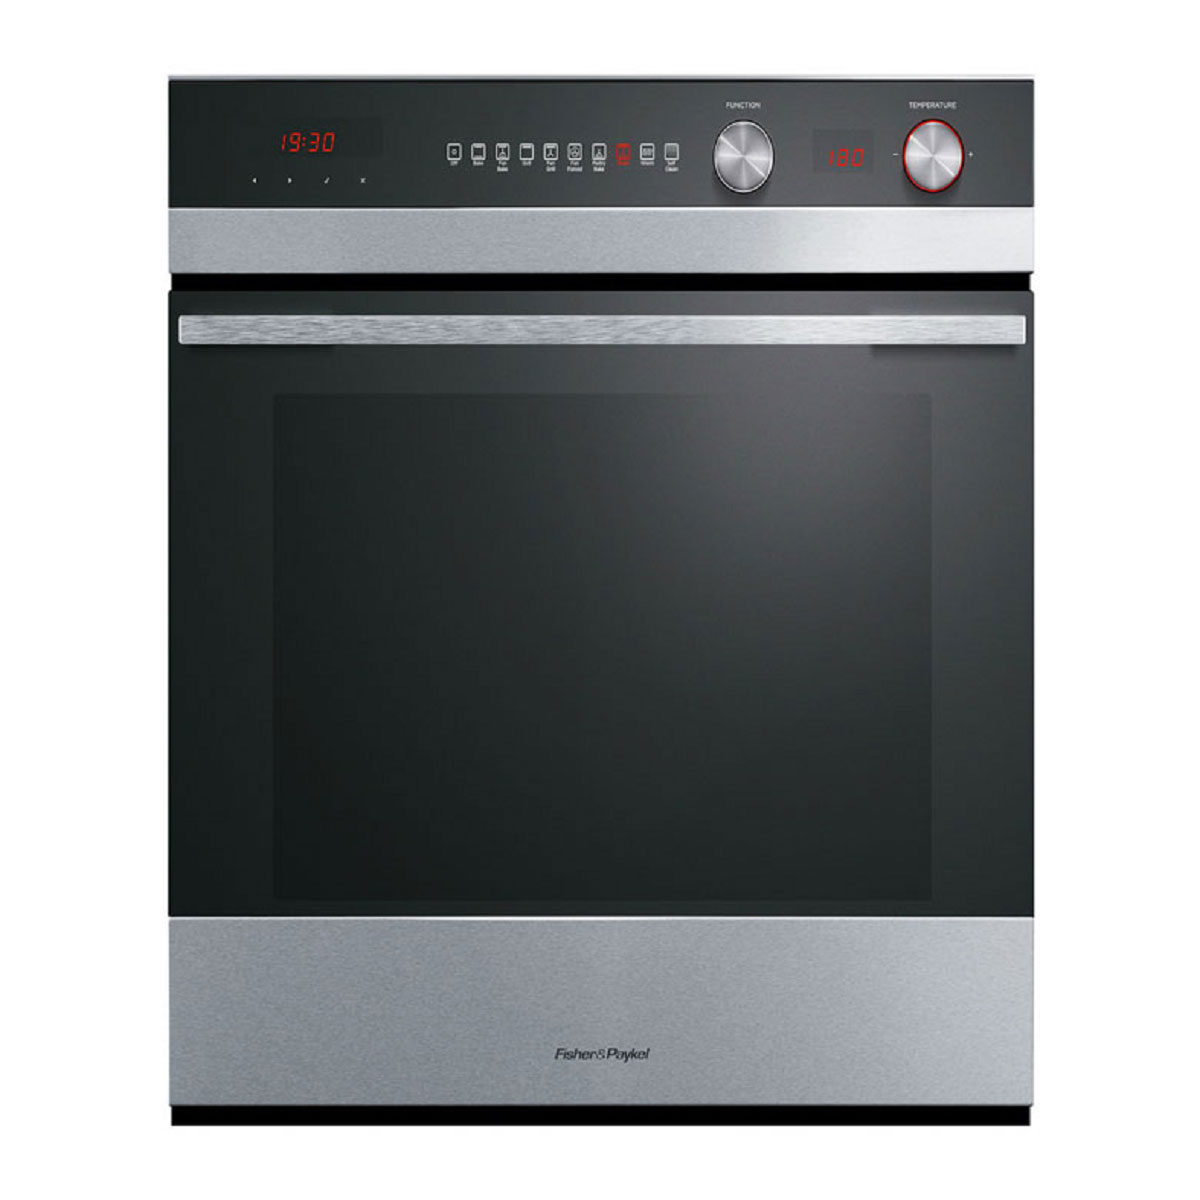 Fisher & Paykel Electric Oven OB60SC9DEPX1